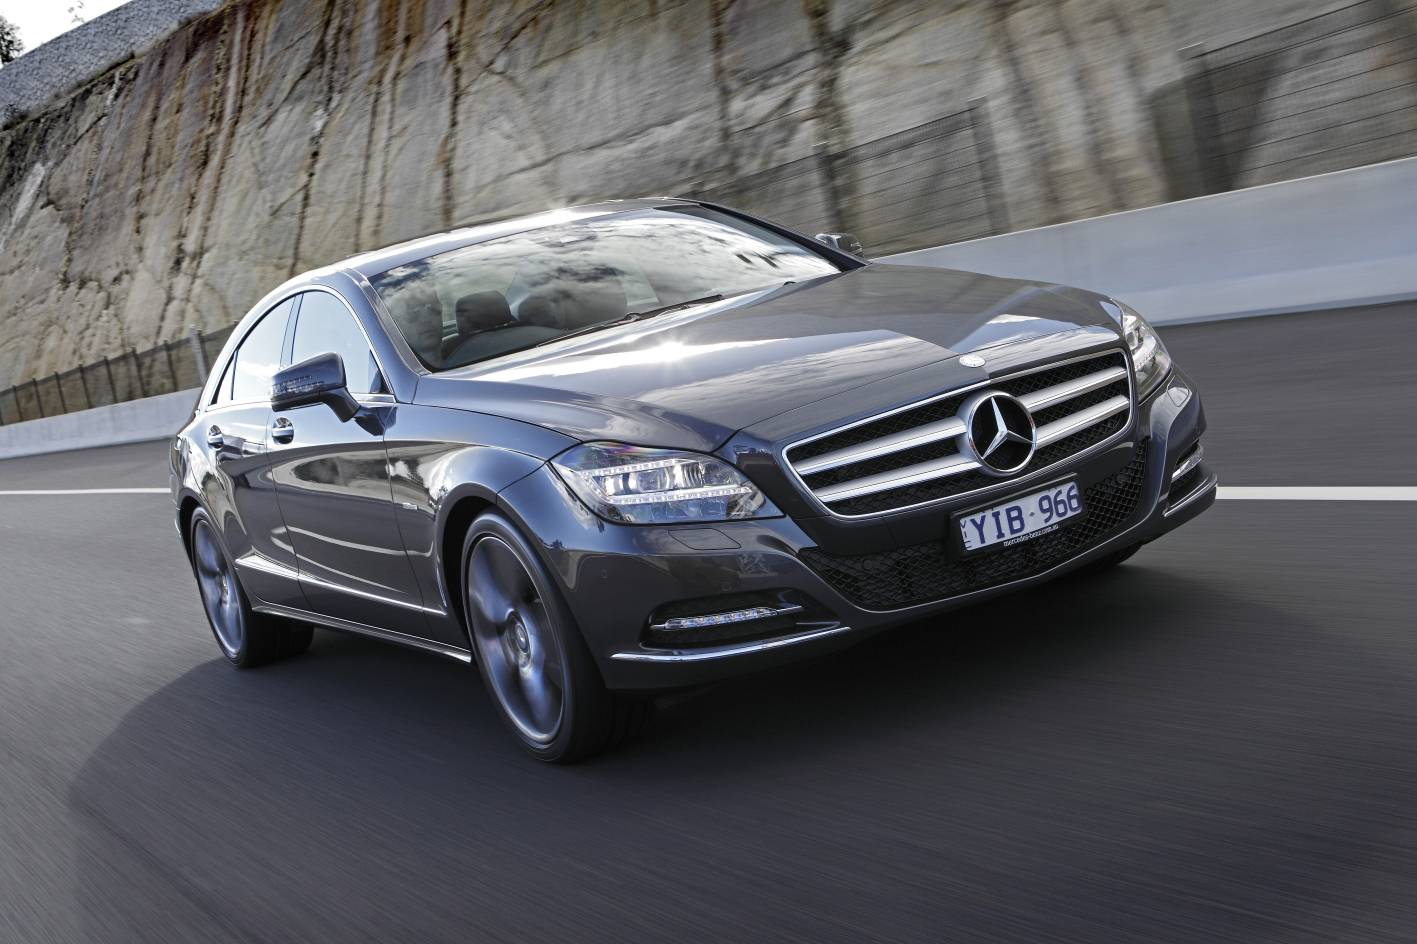 grand car rentals mercedes cls 350 cdi grand car rentals. Black Bedroom Furniture Sets. Home Design Ideas